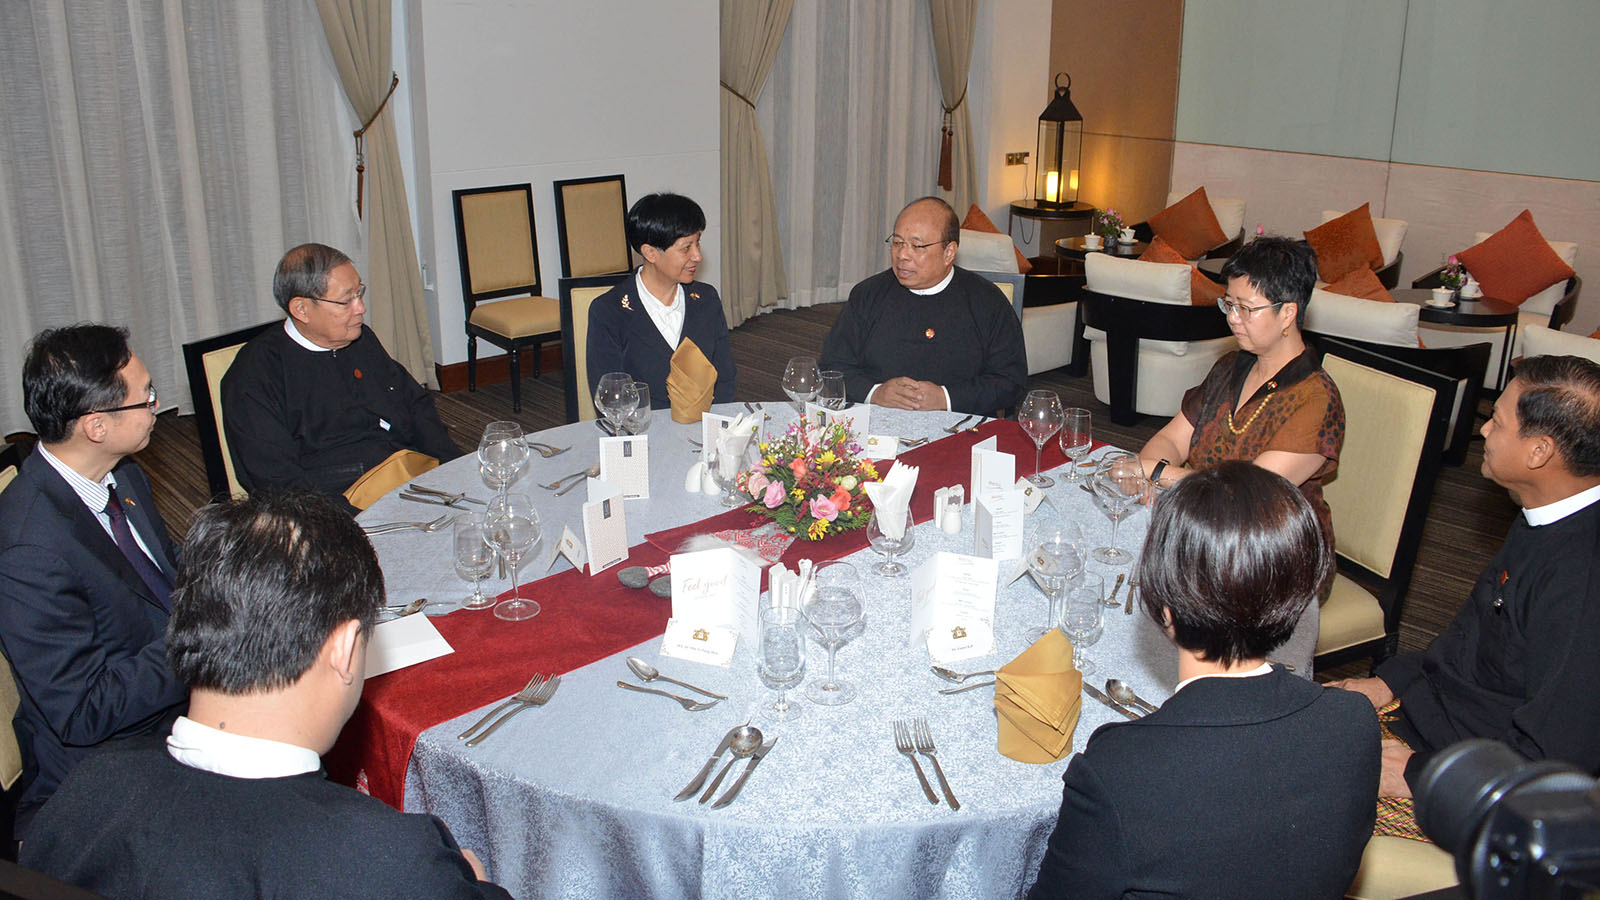 Union Minister U Thaung Tun hosts dinner for Minister in the Prime Minister's Office and Second Minister for Education and Finance of the Republic of Singapore, Ms. Indranee Rajah in Nay Pyi Taw, Photo: MNA